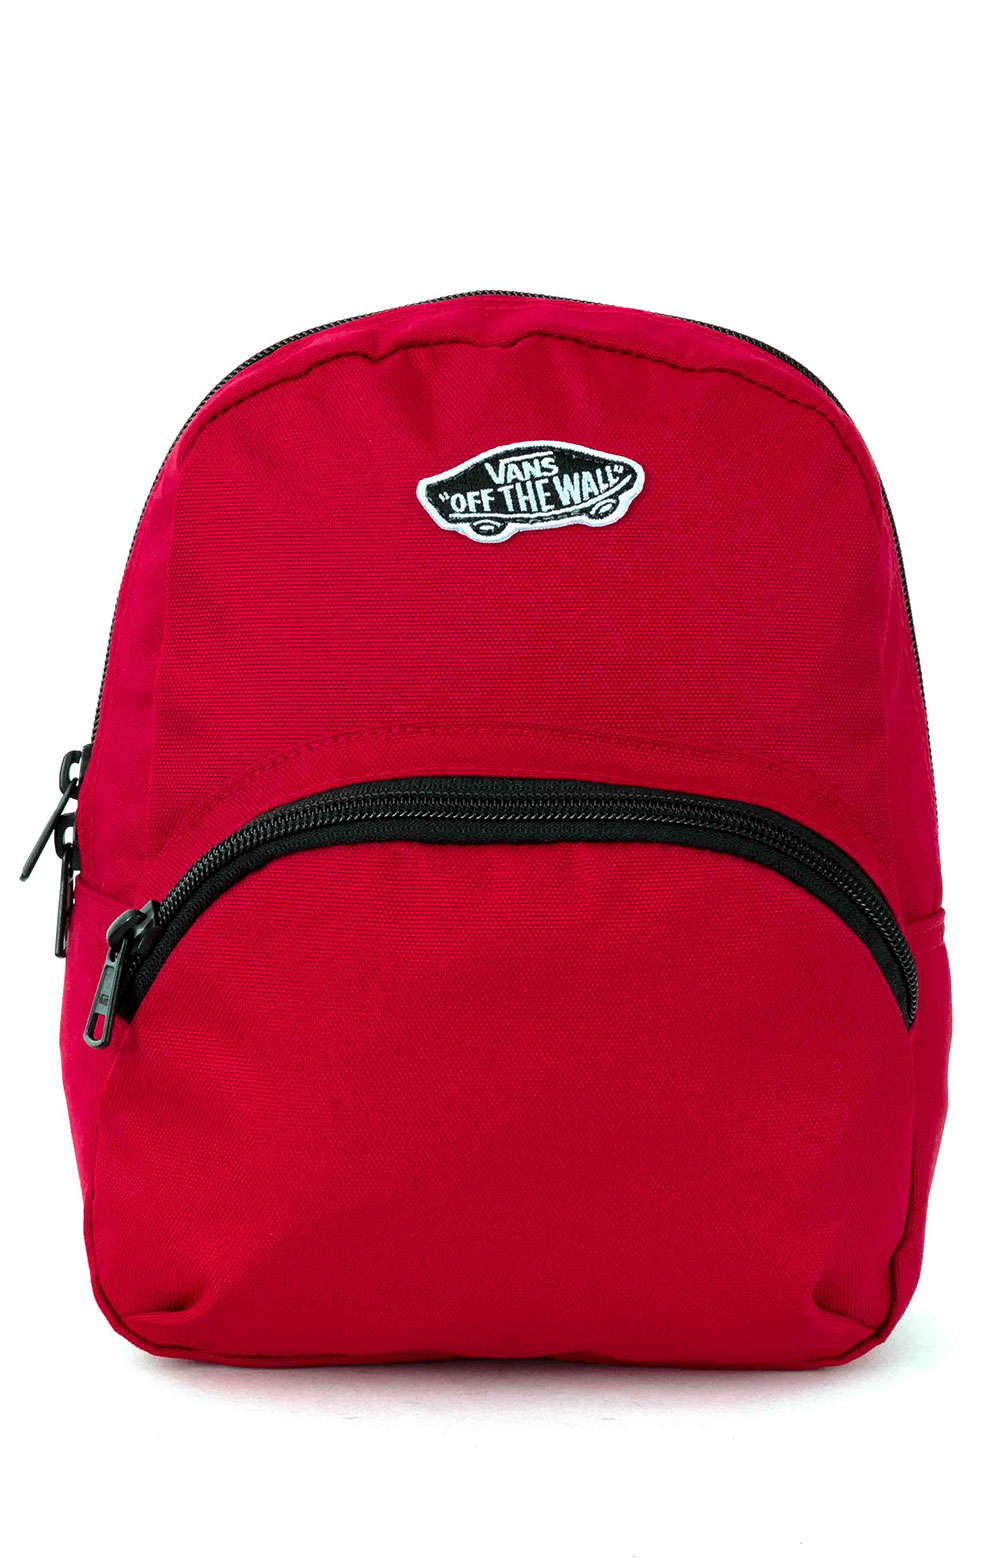 Got This Mini Backpack - Cerise